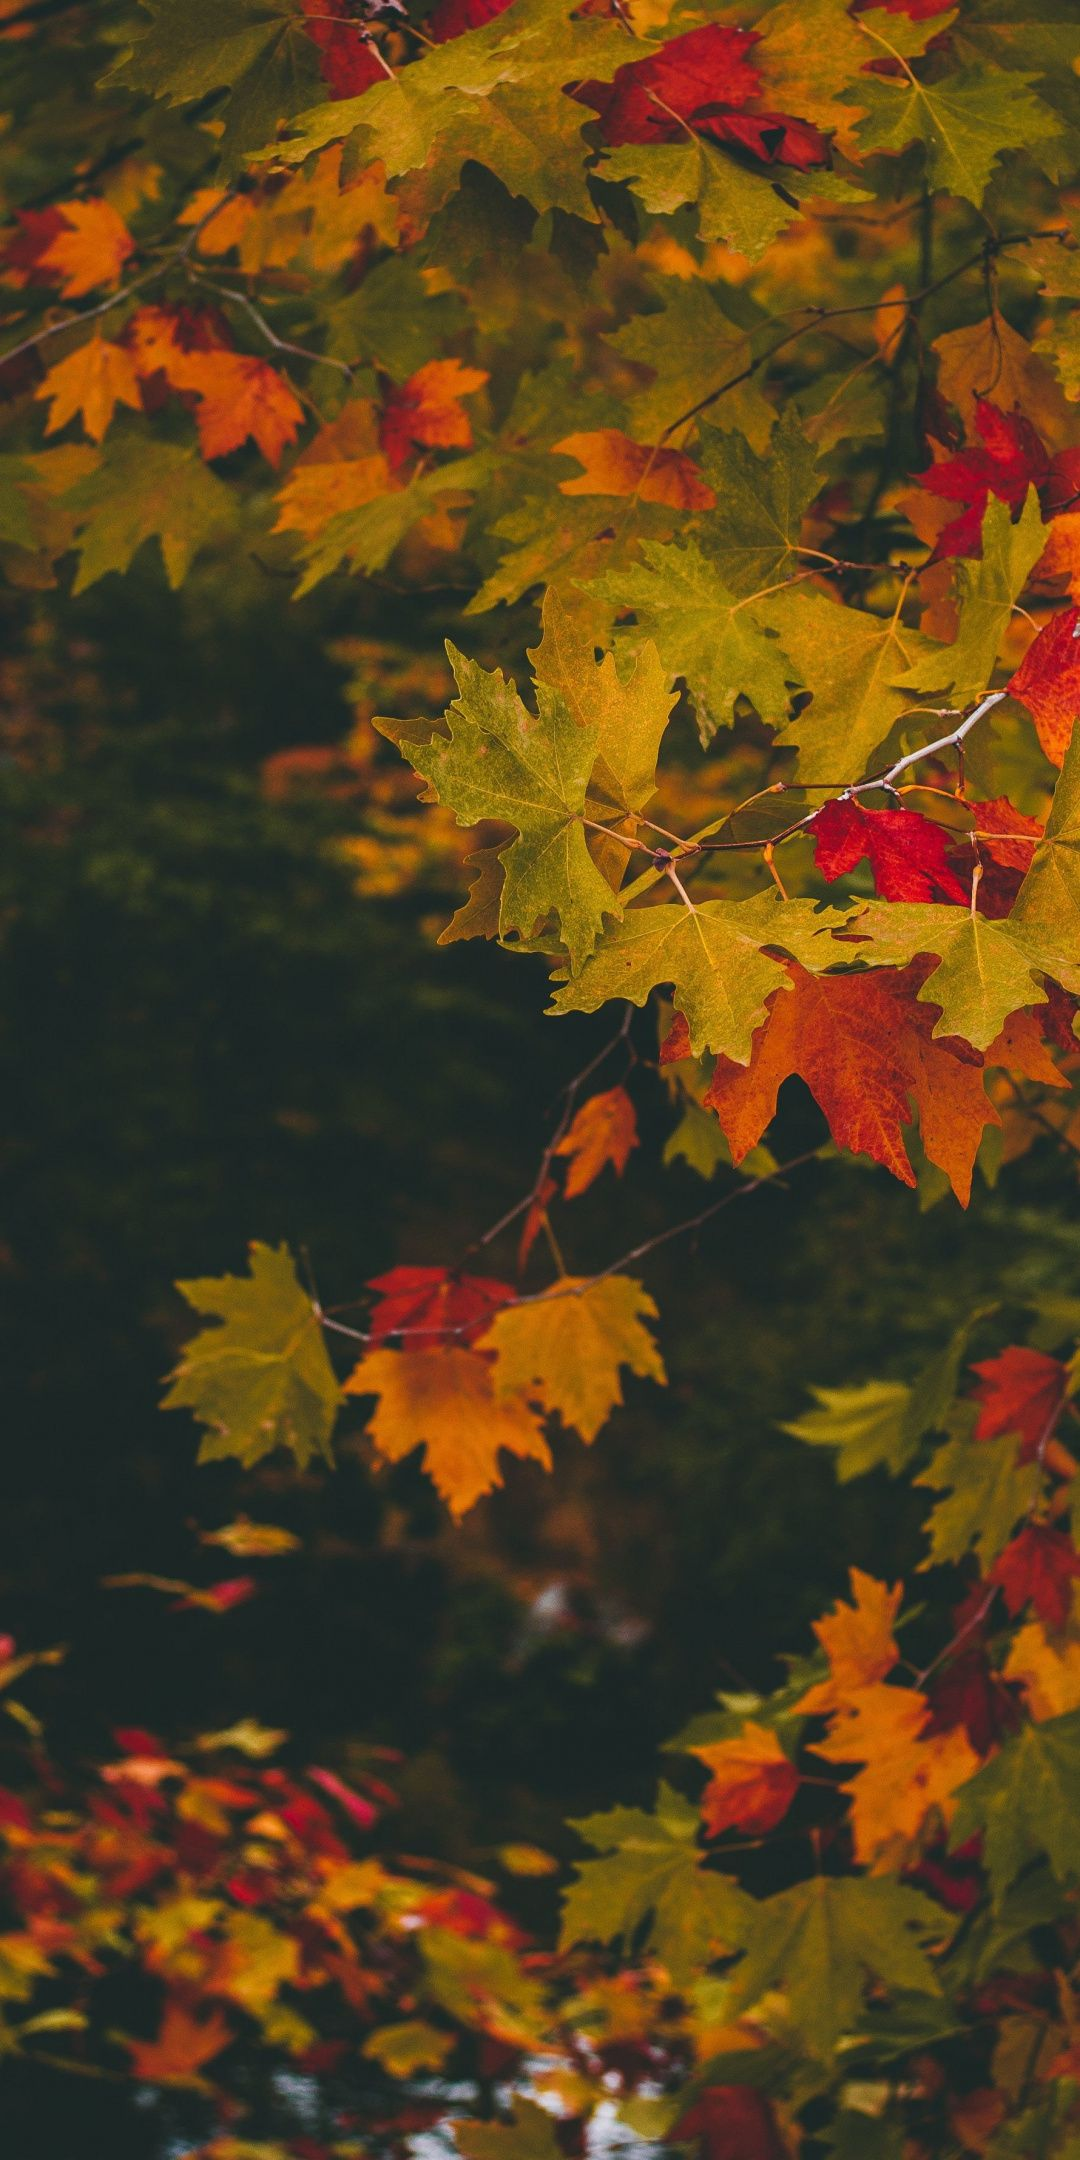 Maple Leaves Autumn Branches 1080x2160 Wallpaper Fall Wallpaper Leaf Photography Autumn Inspiration